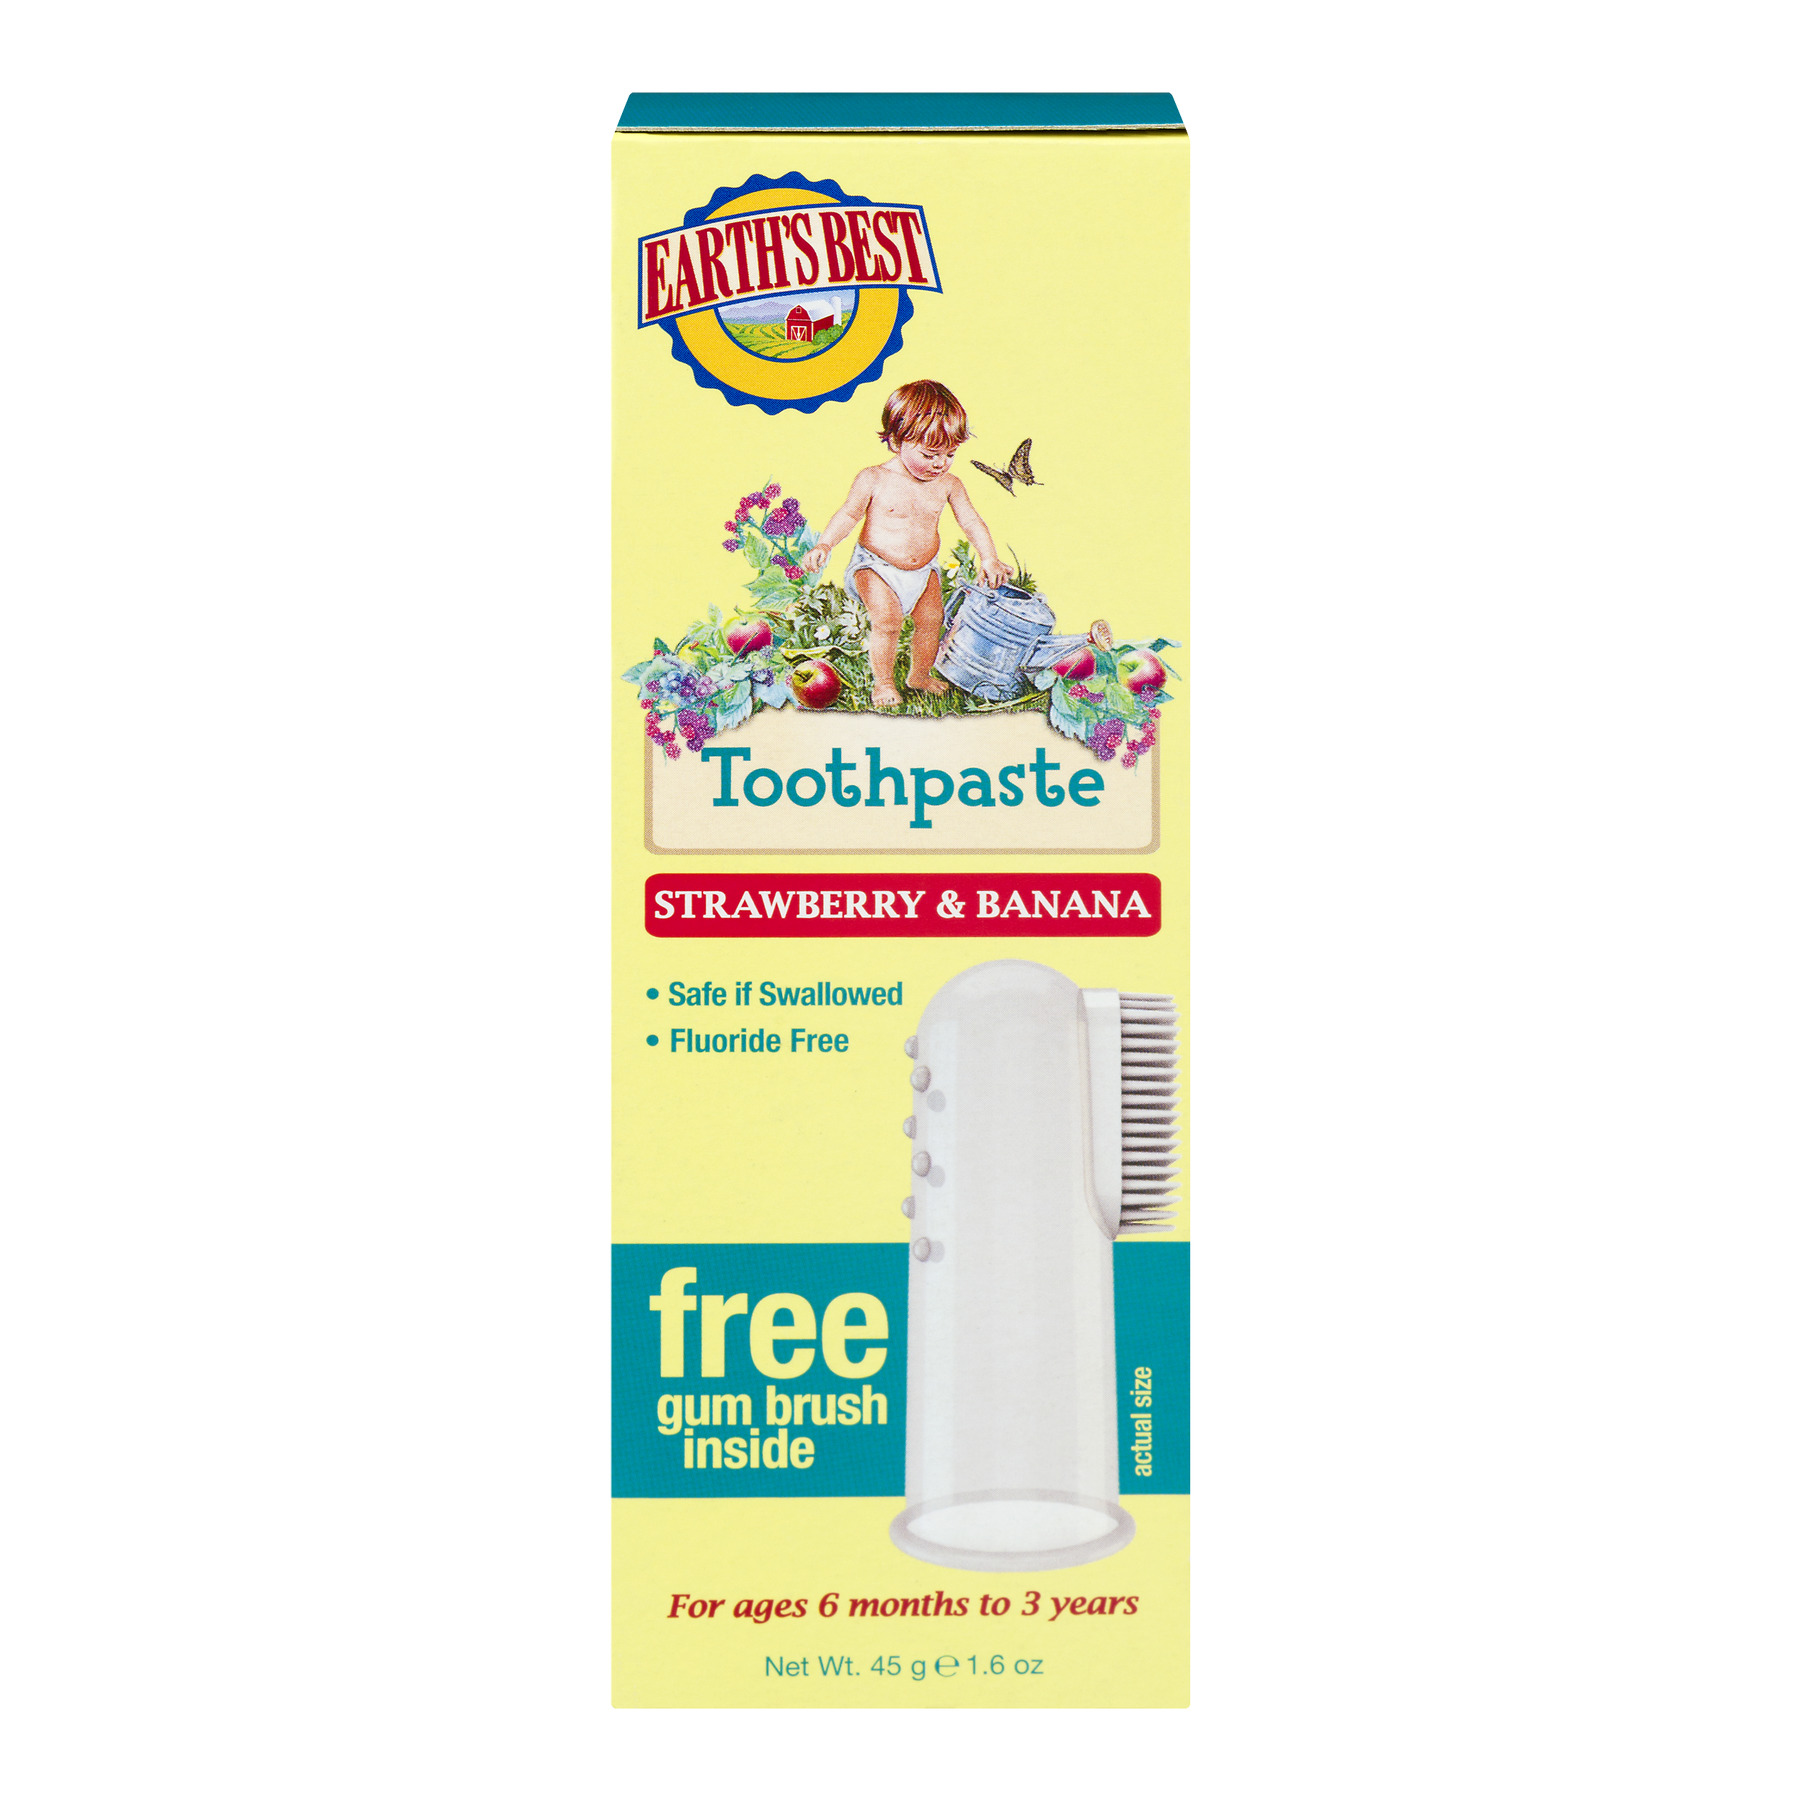 Earth's Best Toothpaste Strawberry & Banana, 1.6 OZ